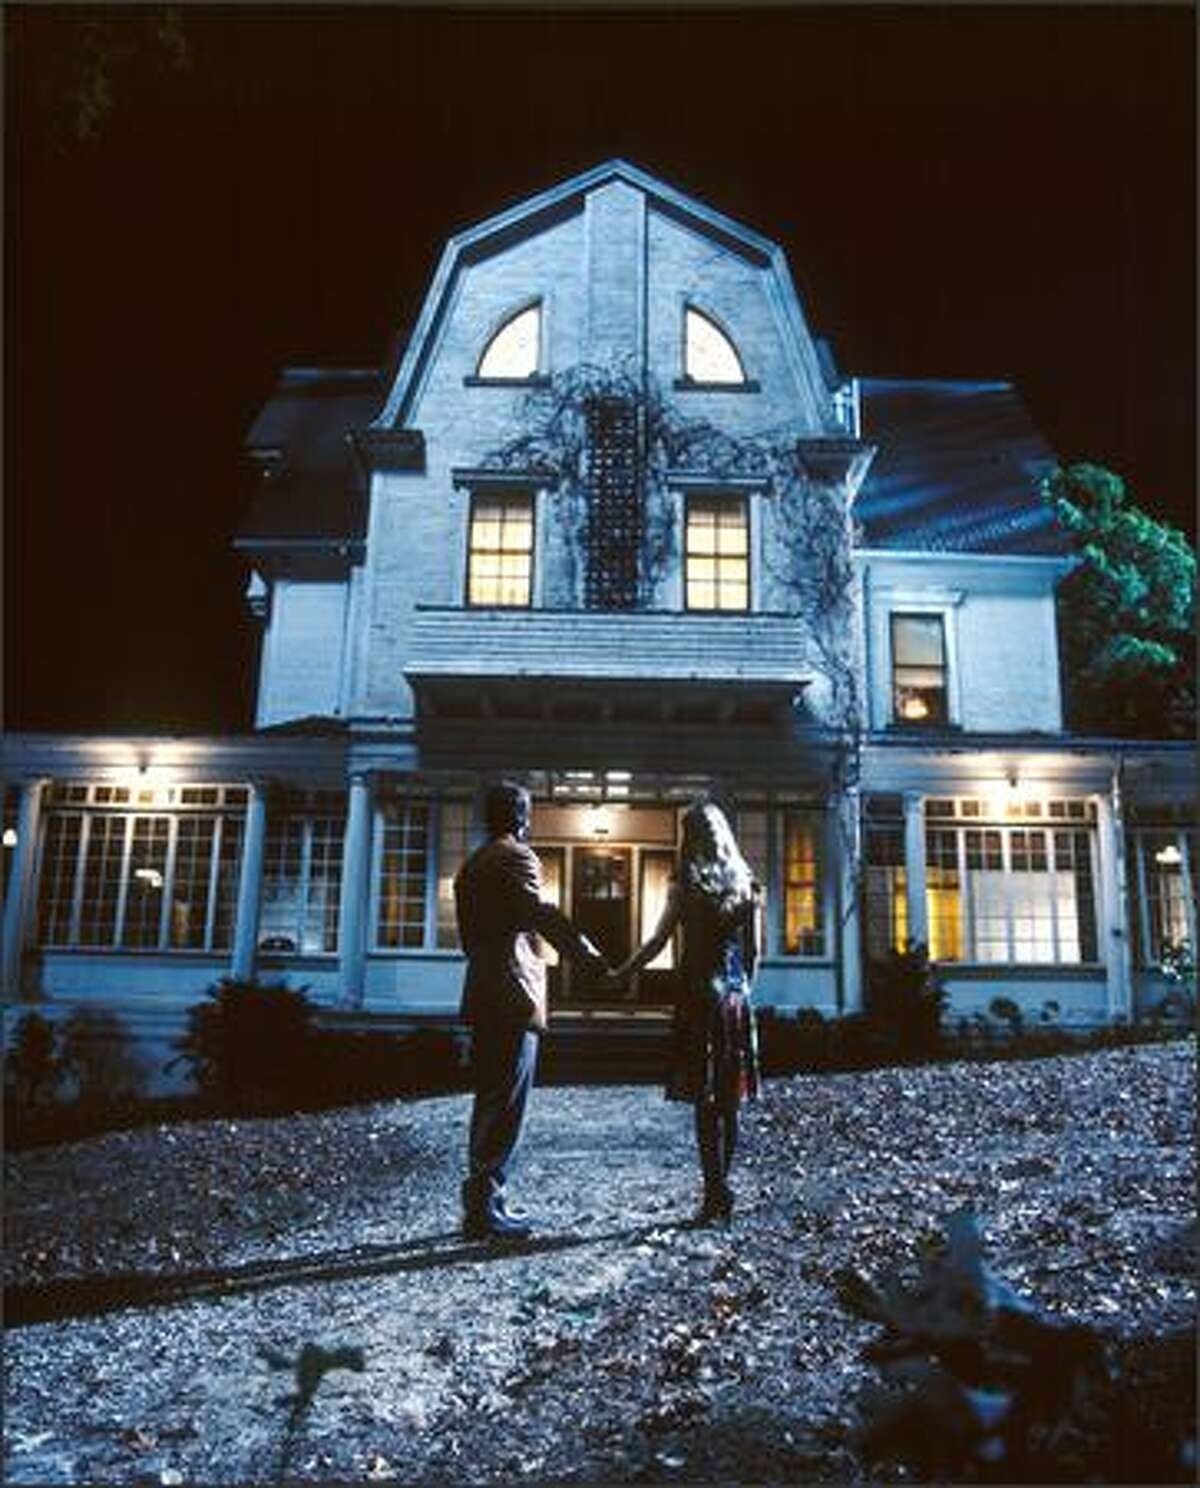 George and Kathy Lutz (Ryan Reynolds and Melissa George) think they've found their dream house -- but it quickly becomes a nightmare in the remake of